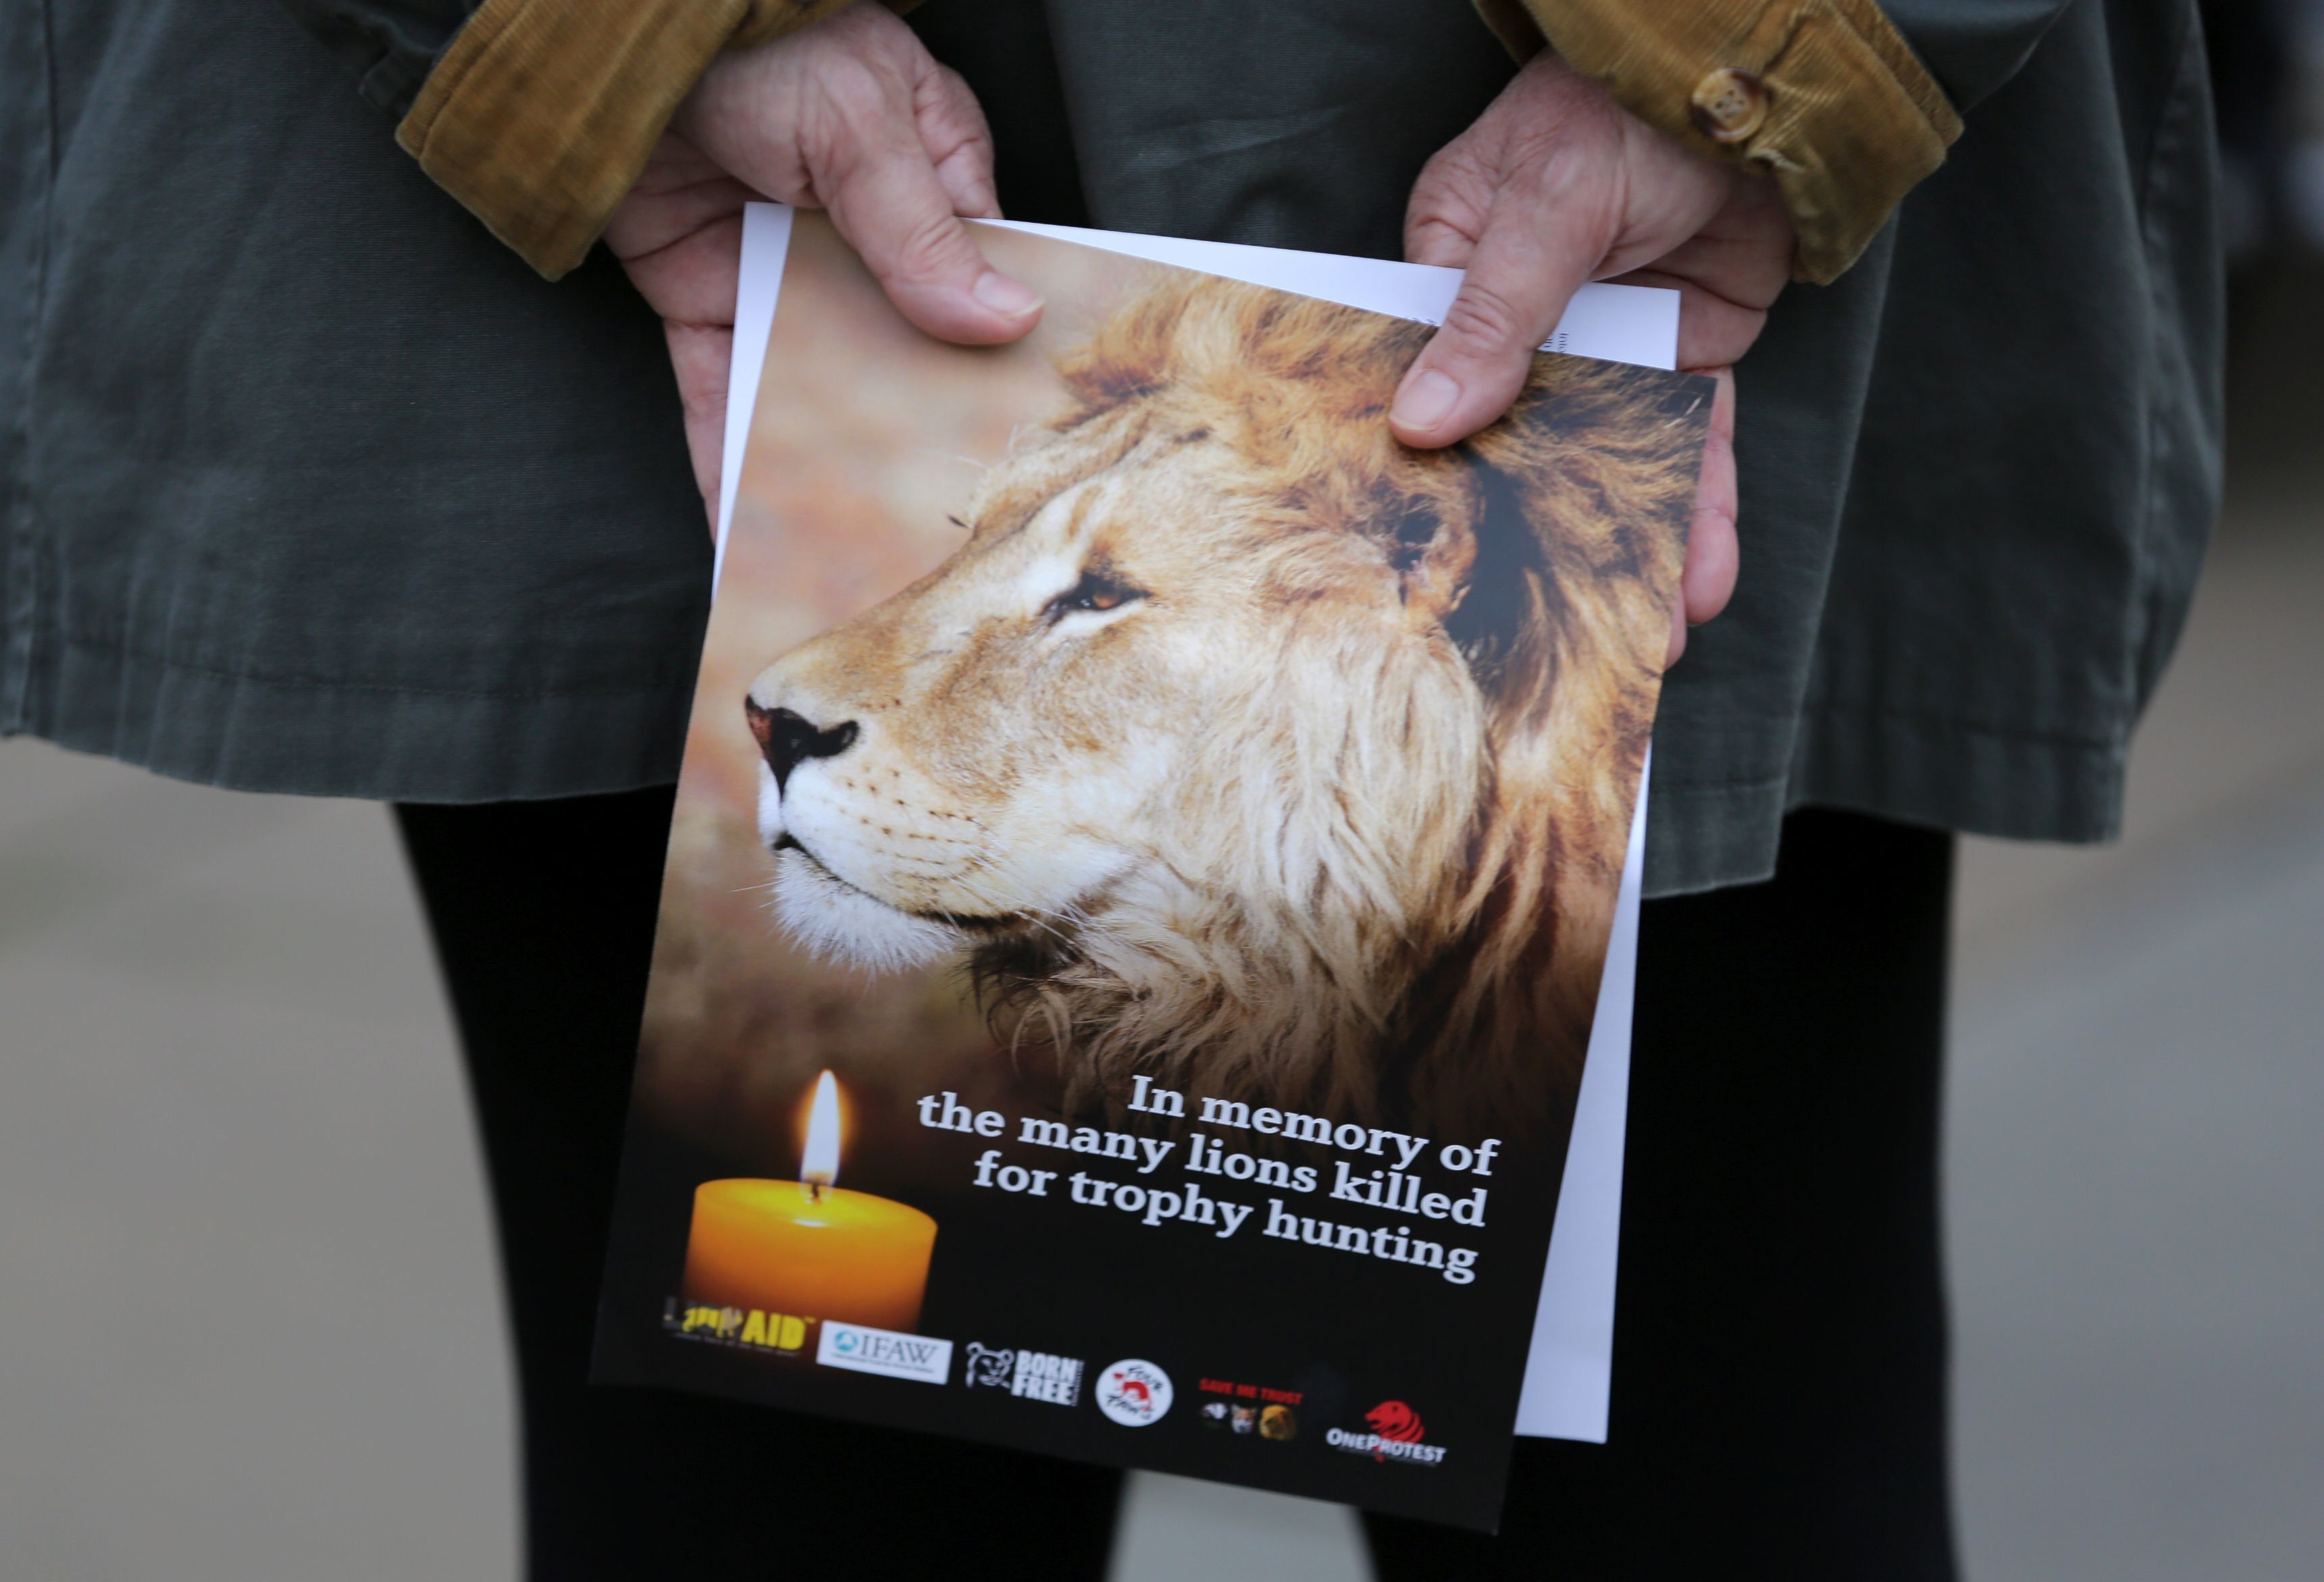 A pamphlet showing an image of Cecil the lion, is held at a vigil in central London on July 30, 2016. Cecil was killed by American dentist and trophy hunter, Walter Palmer, in Zimbabwe on 1st July 2015. The vigil will remember Cecil, as well as all lions that have tragically lost their lives to trophy hunting.  / AFP / DANIEL LEAL-OLIVAS        (Photo credit should read DANIEL LEAL-OLIVAS/AFP/Getty Images)